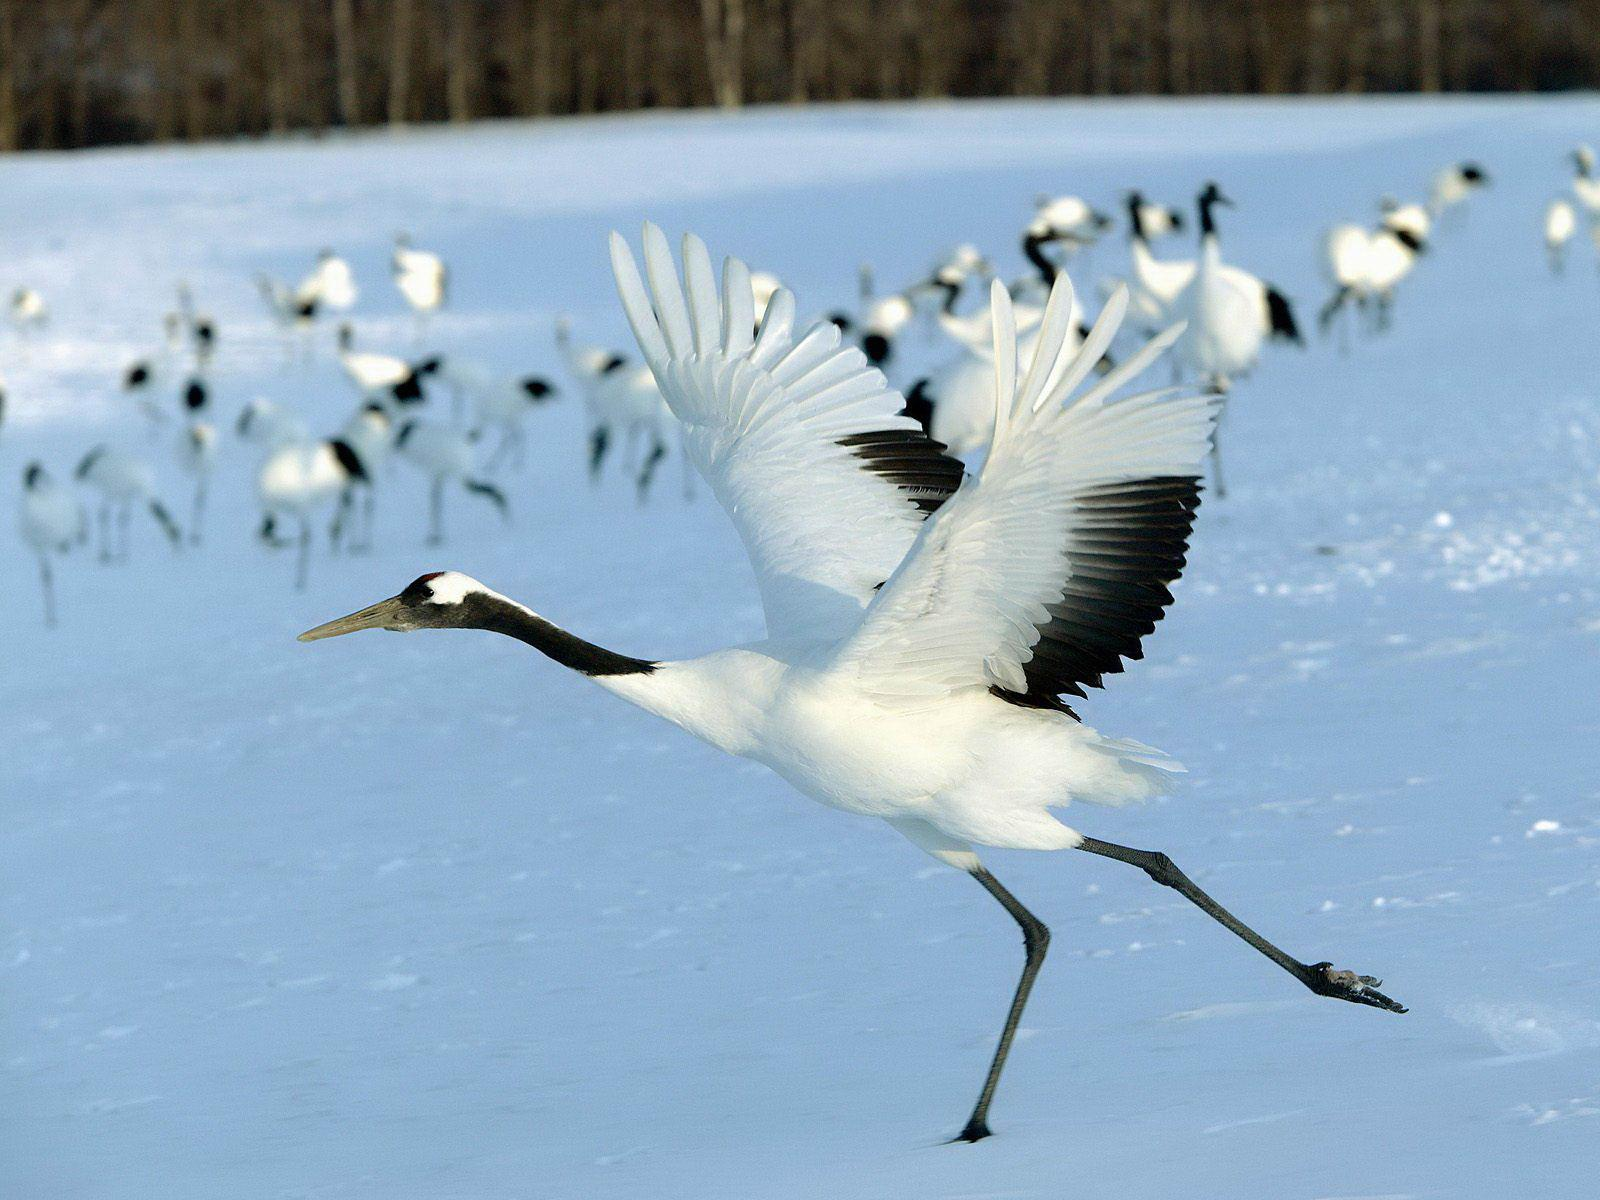 All About Animal Wildlife: Crane Bird Facts and Images-Photos